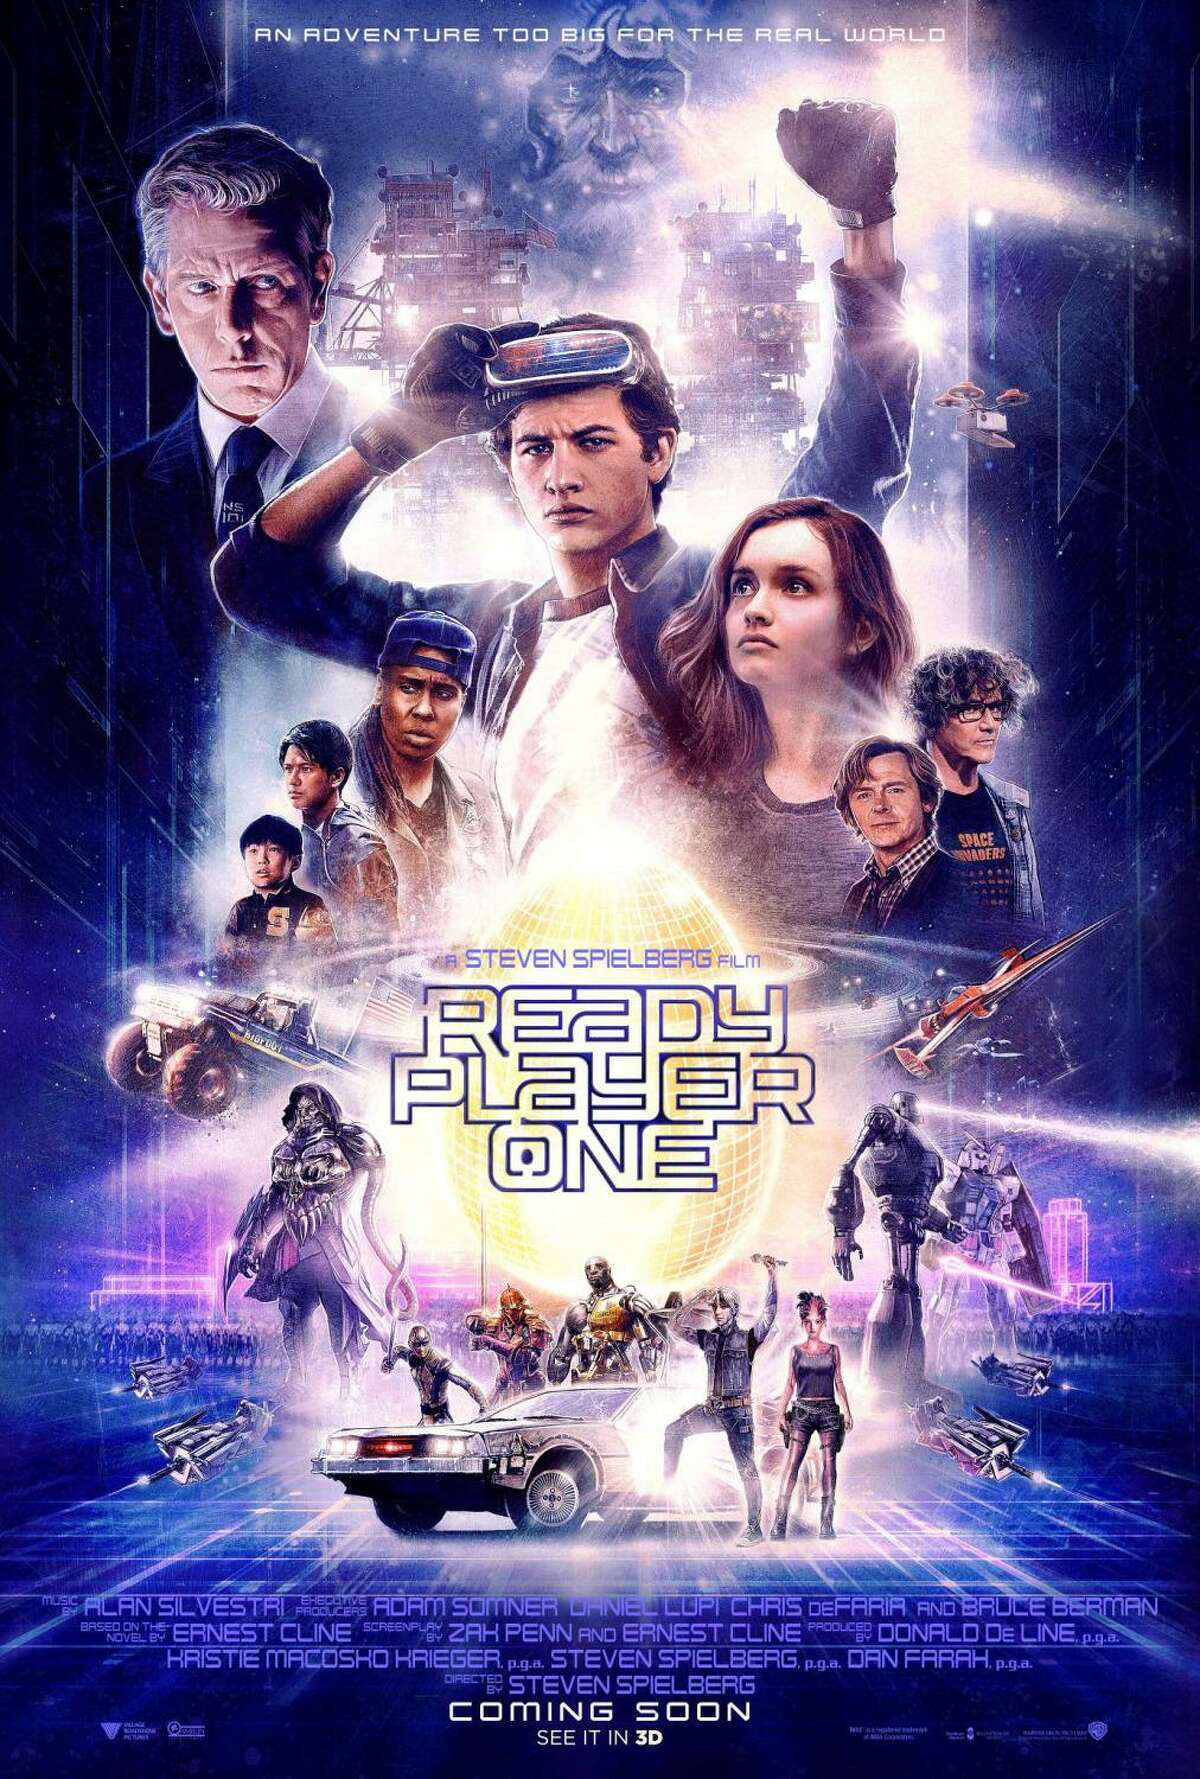 Spielberg's latest theatrical outing is 2018's Ready Player One, based on the best-selling sci-fi novel by Ernest Cline. Set in the near-enough future, the movie tells the story of a world that lives in their Alternate Reality game called the Oasis, which has consumed every aspect of modern life.